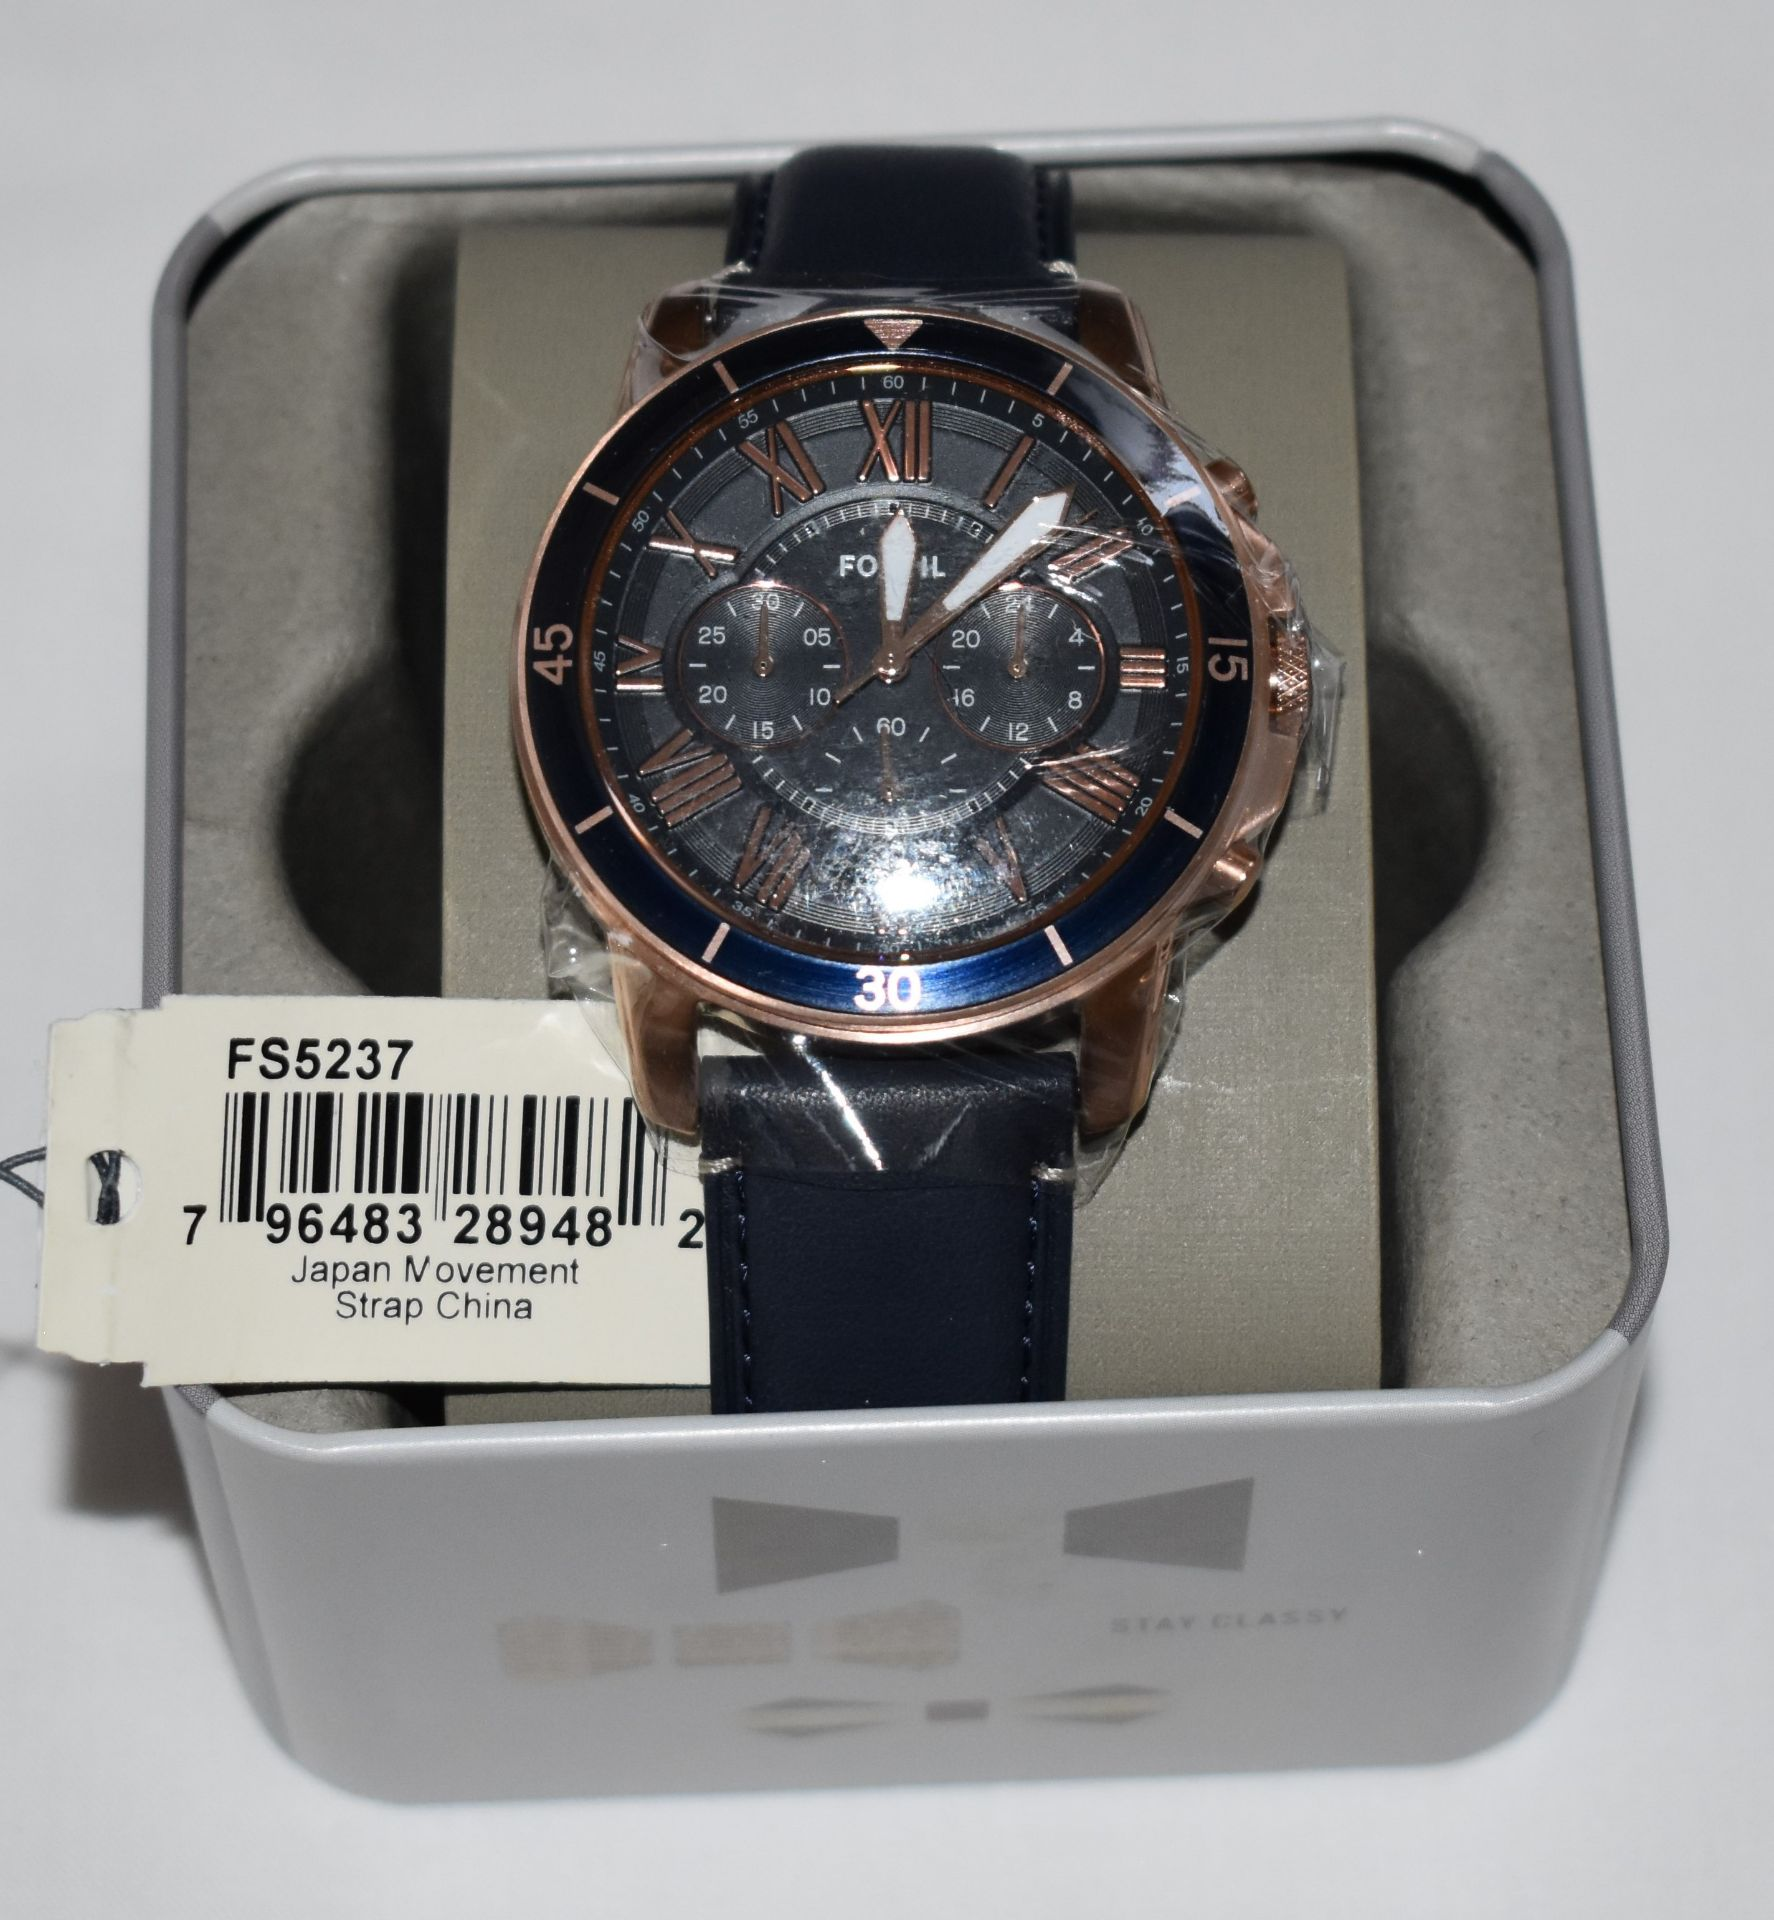 Fossil Men's Watch FS 5237 - Image 2 of 2